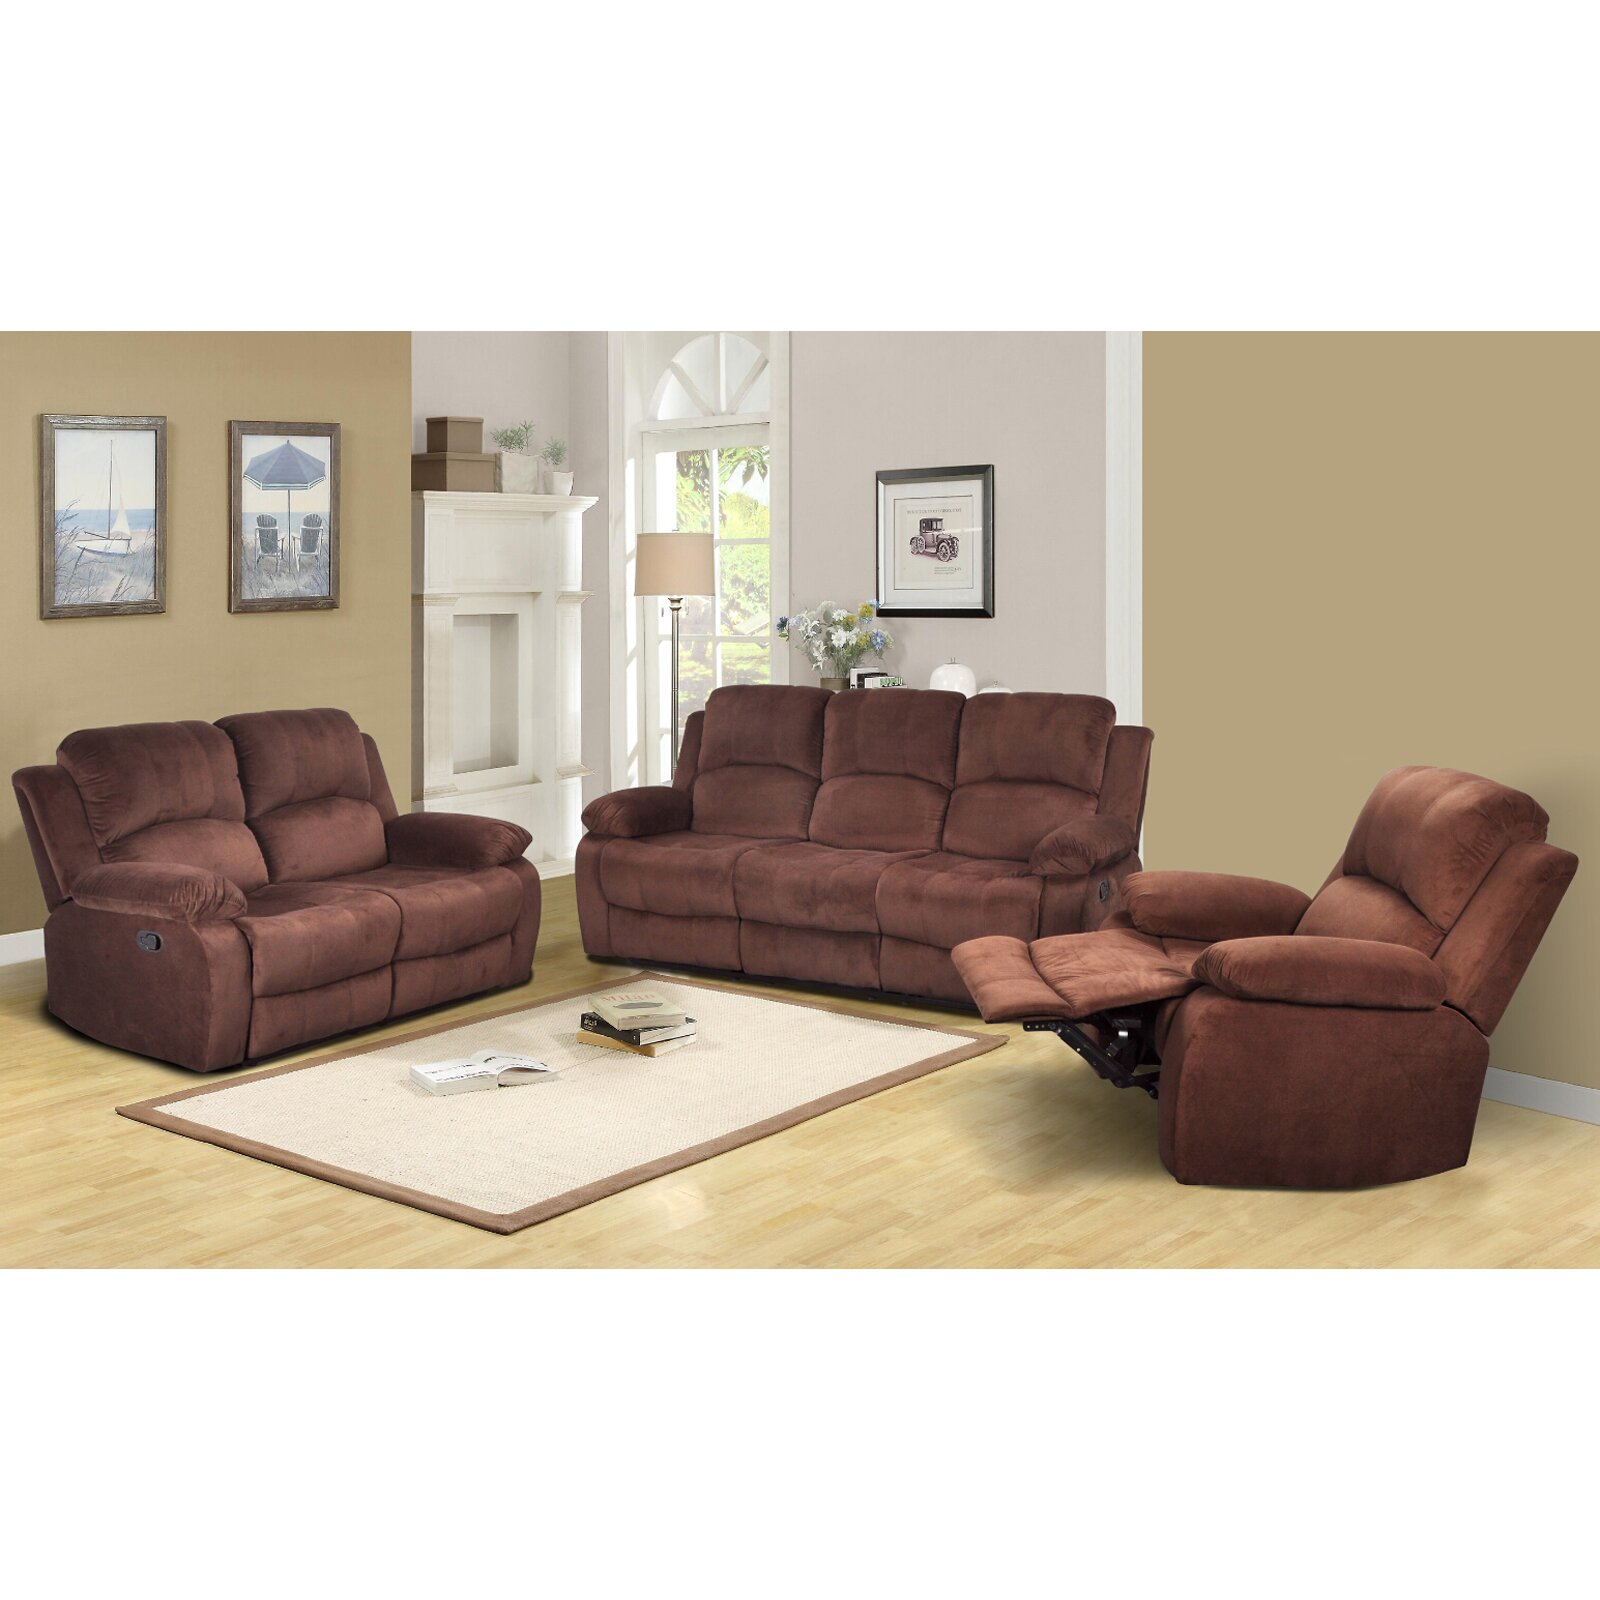 Beverly fine furniture denver 3 piece microfiber reclining for 3 piece living room furniture